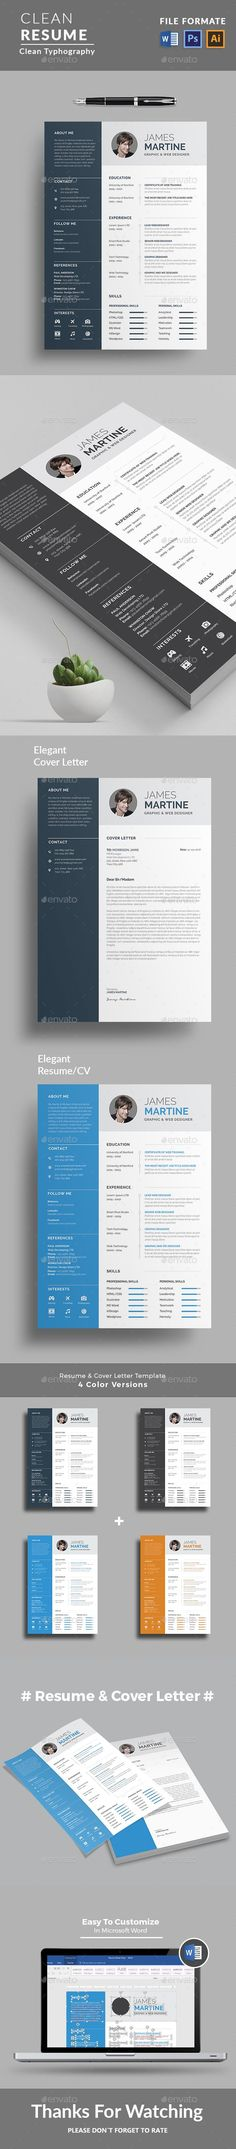 Resume Creative, Professional resume and Modern resume template - resume paper size